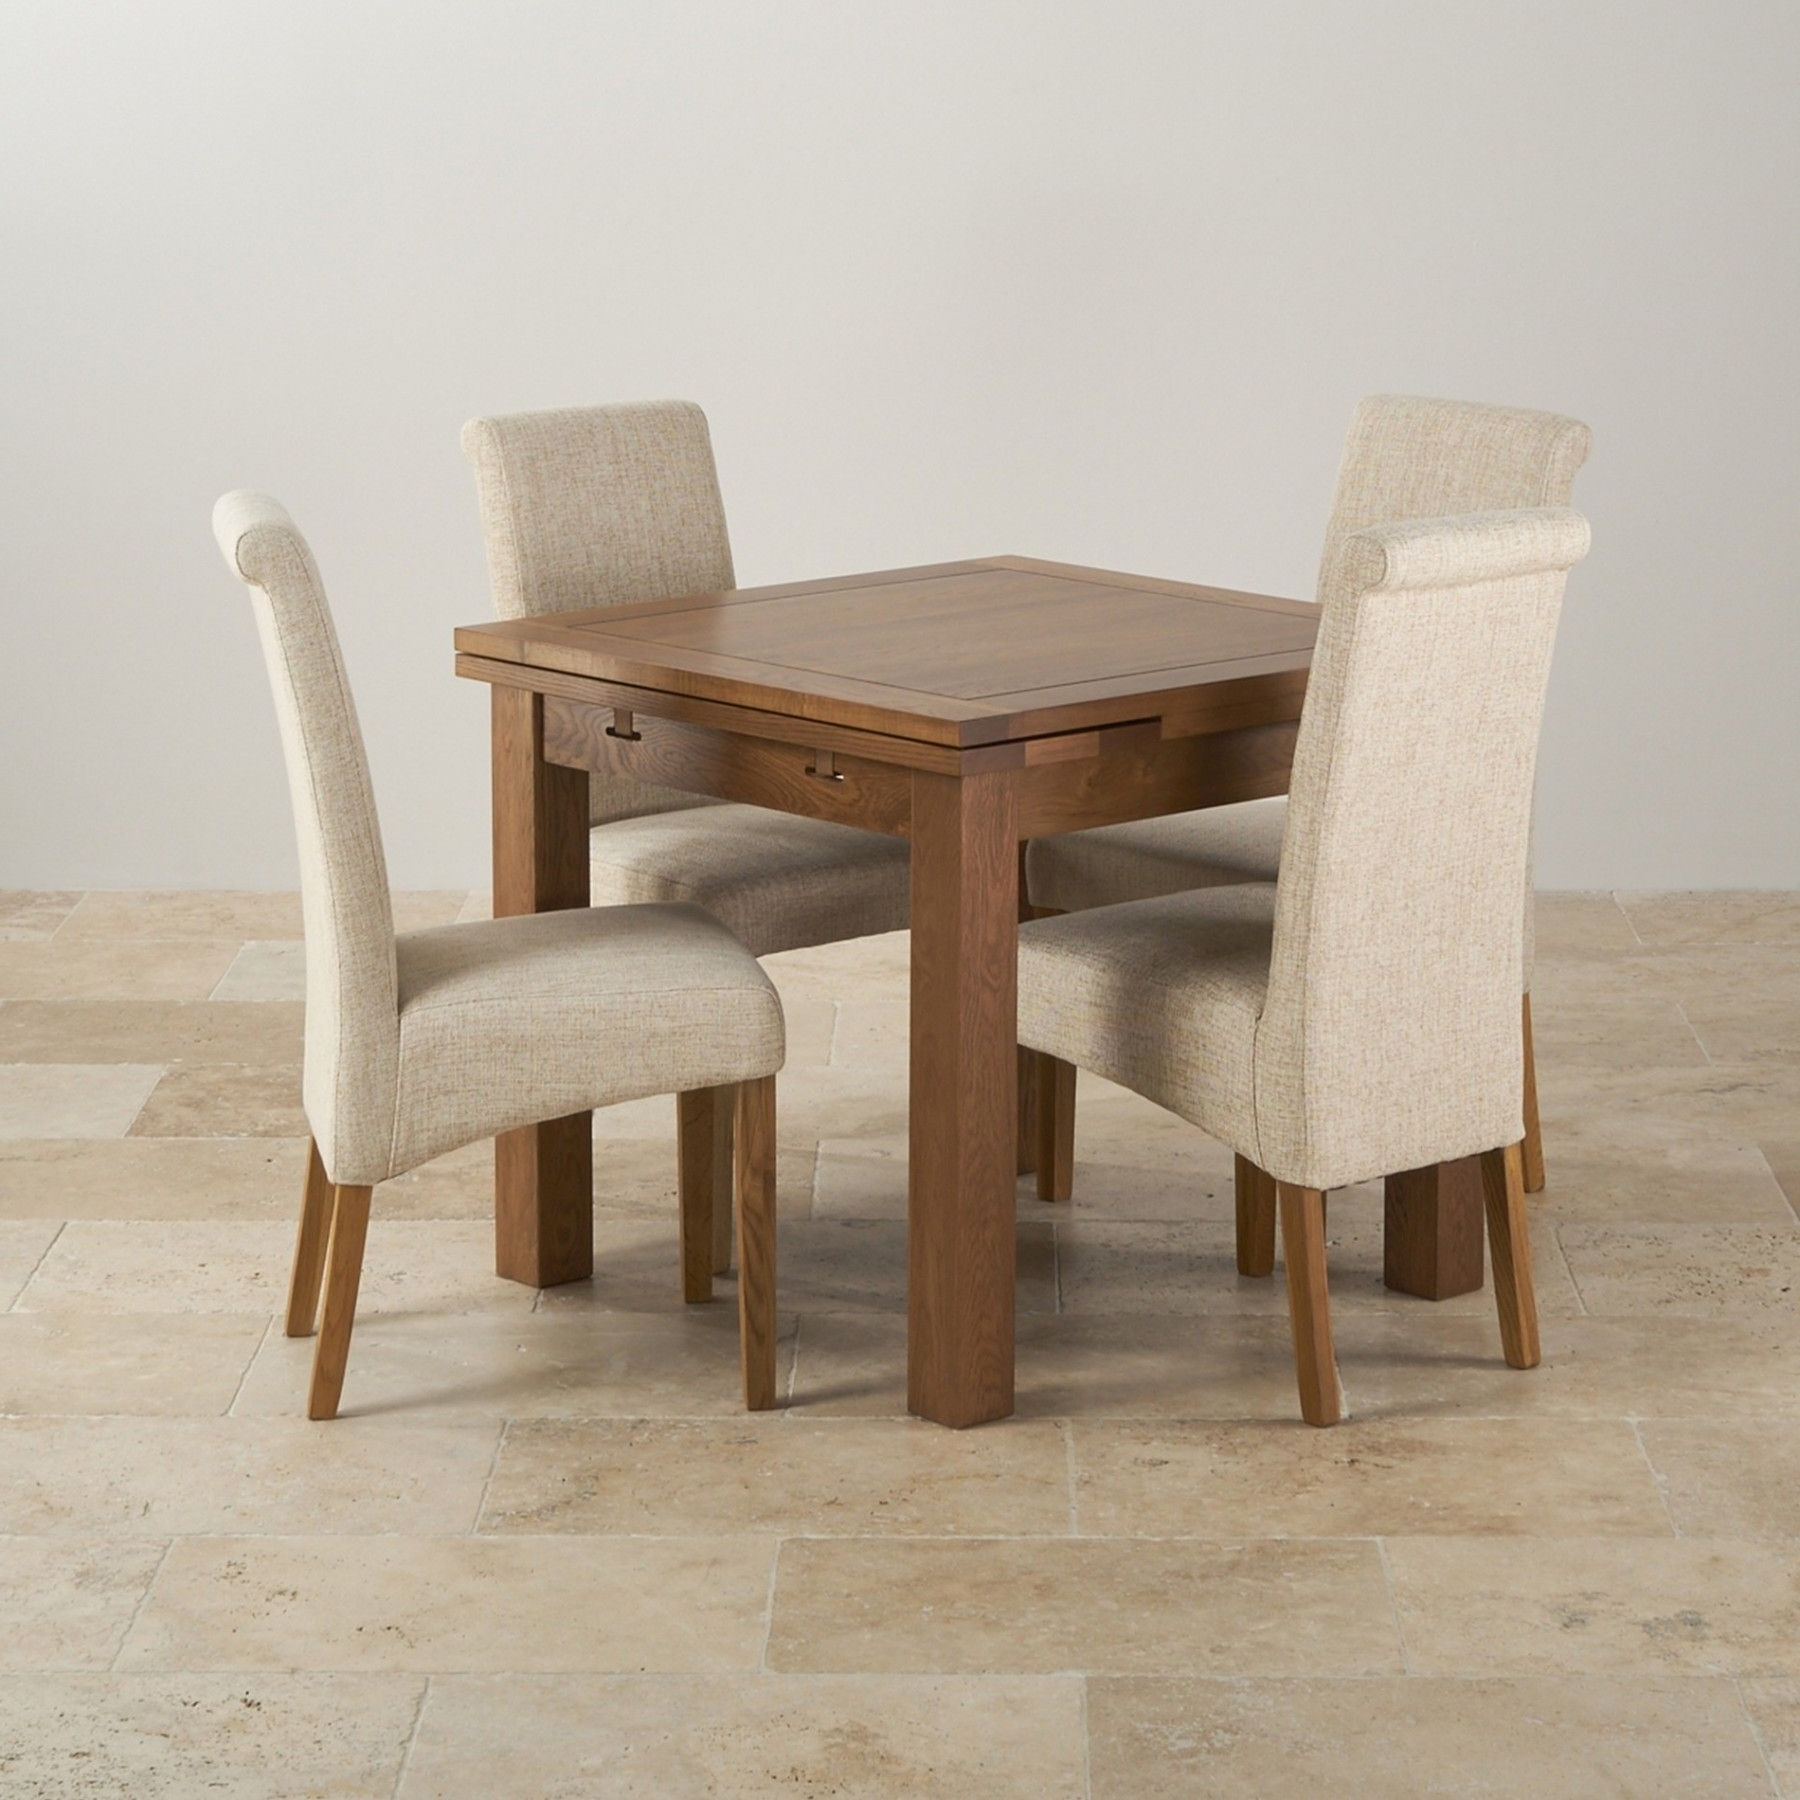 Most Recently Released Oak Extending Dining Tables Sets With Regard To The Rustic 3Ft X 3Ft Solid Oak Extending Dining Table And Four High (View 9 of 25)